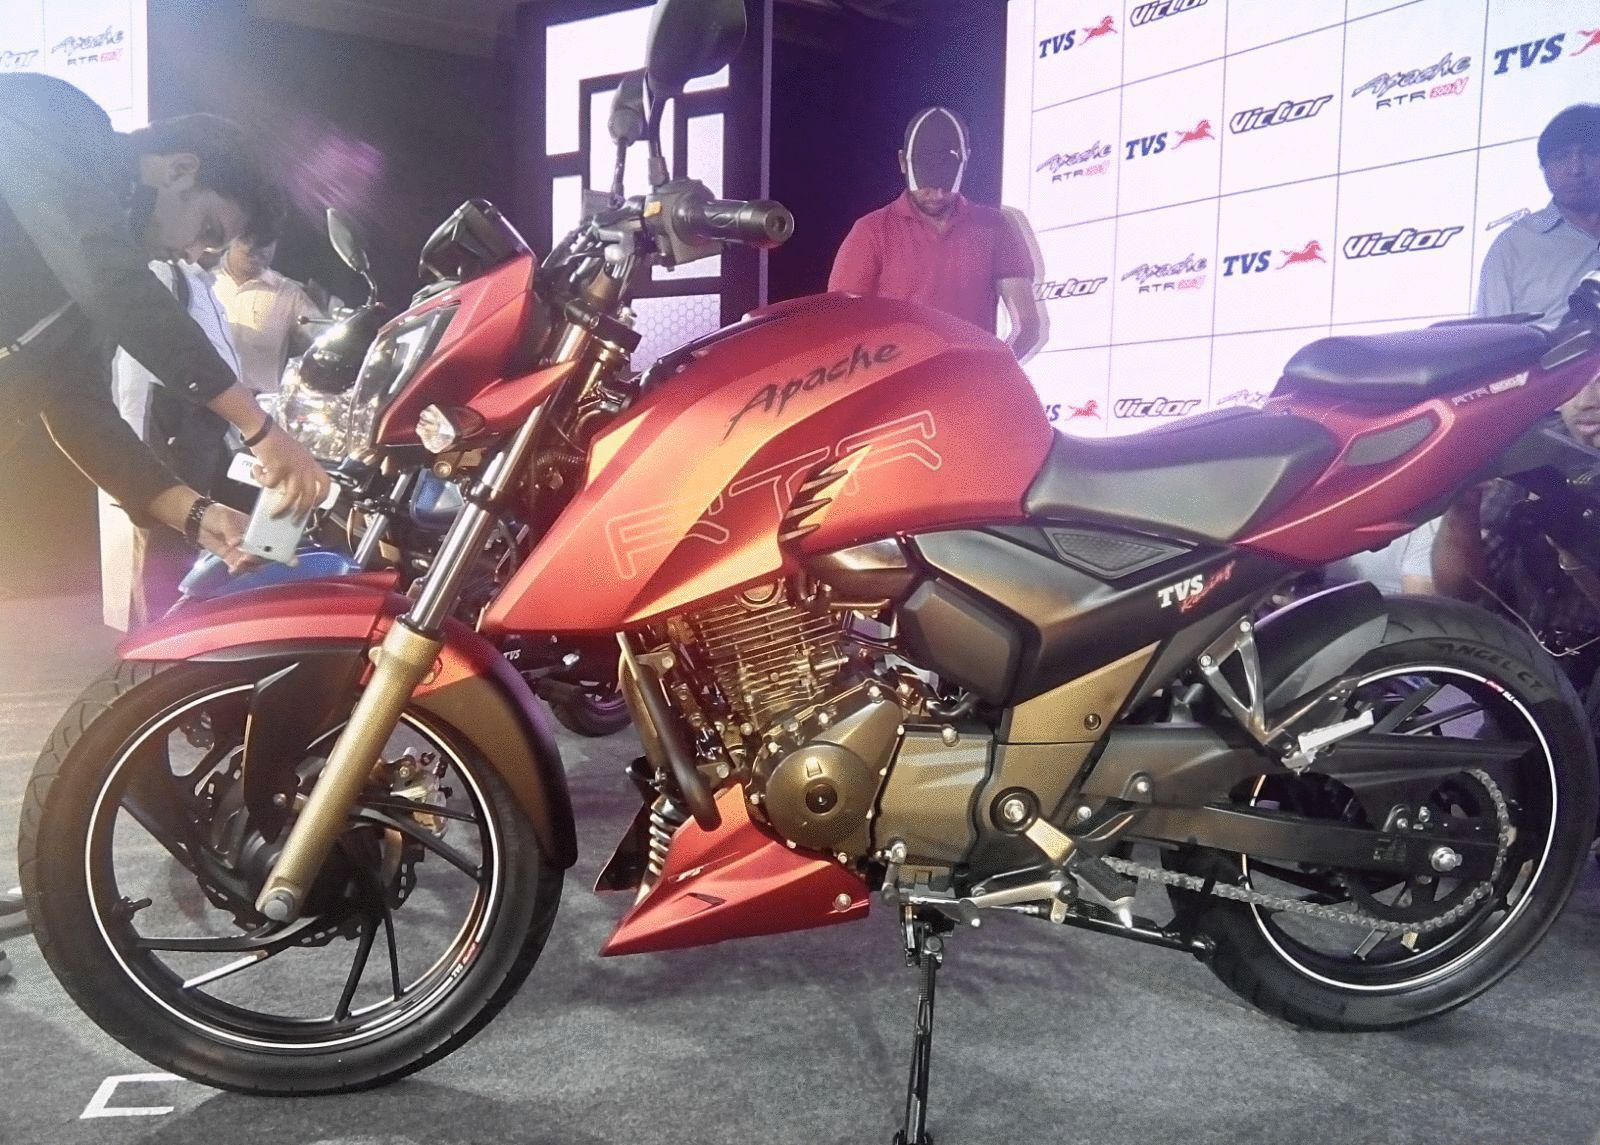 TVS Apache RTR 200 4V Is Officially Released - Motorbikes India